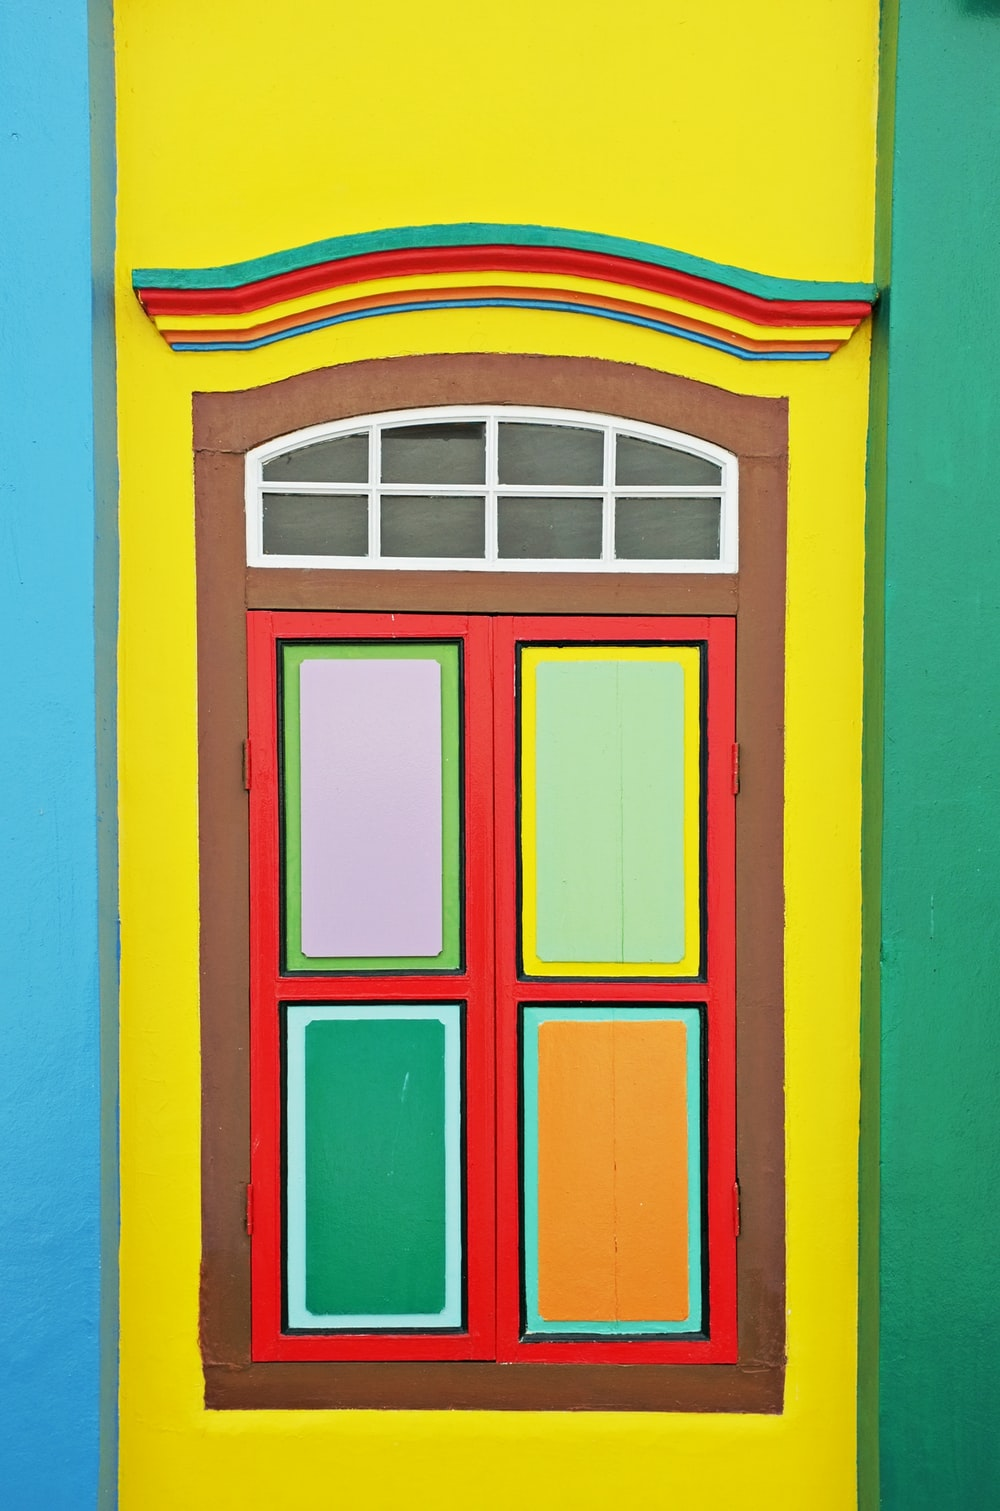 red blue and yellow wooden window